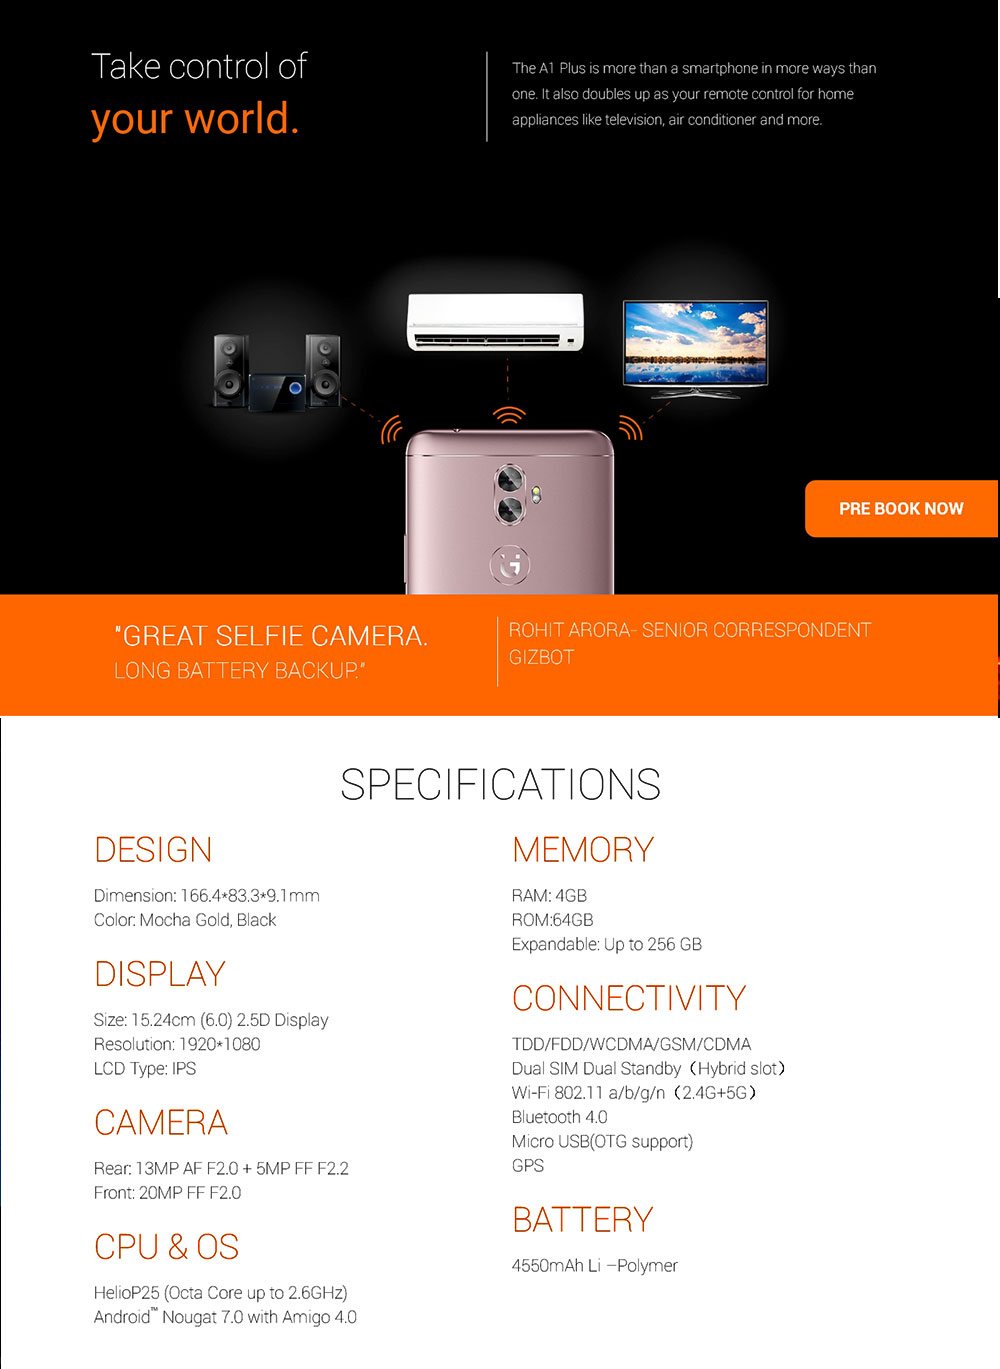 Gionee-A1-Plus-_-_09